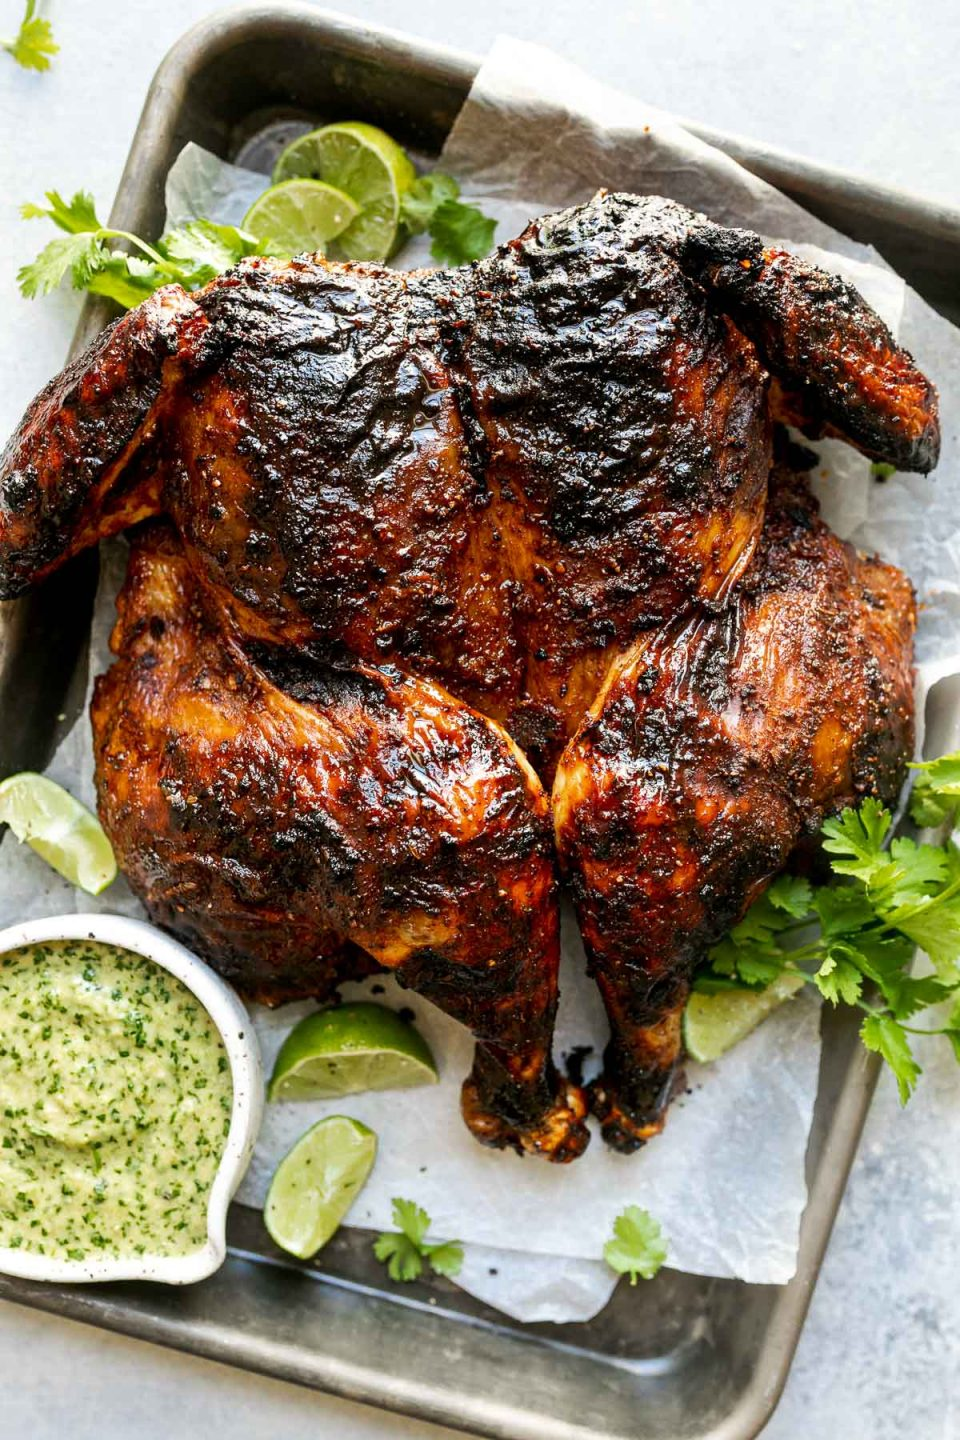 Grilled spatchcocked chicken with crispy, charred skin, sitting atop a parchment-lined baking sheet surrounded by lime wedges, fresh cilantro, & charred jalapeno sauce. The baking sheet sits atop a light blue surface, surrounded by fresh cilantro leaves.